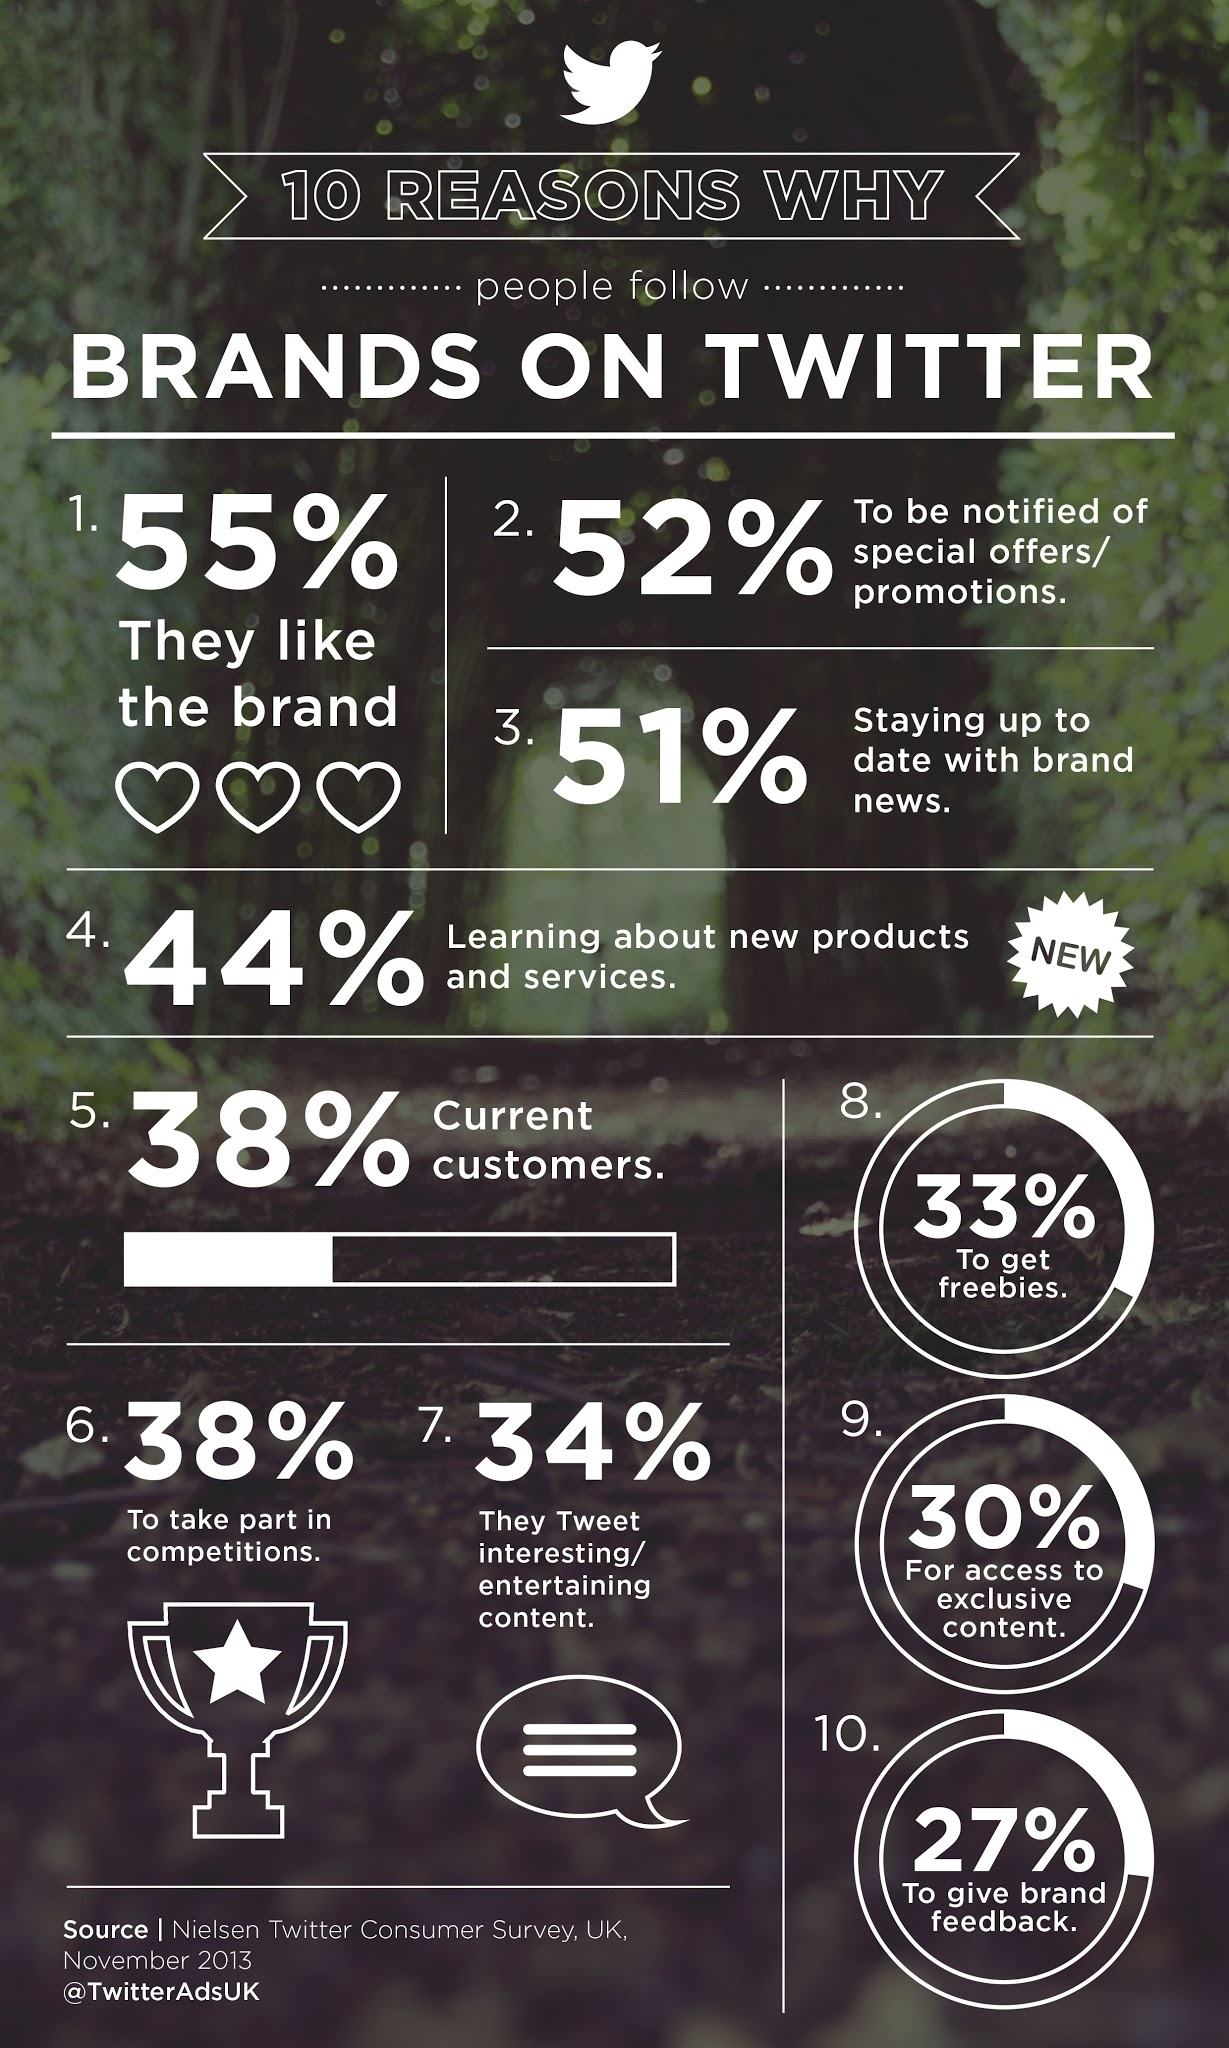 10 reasons why people follow brands on Twitter - infographic